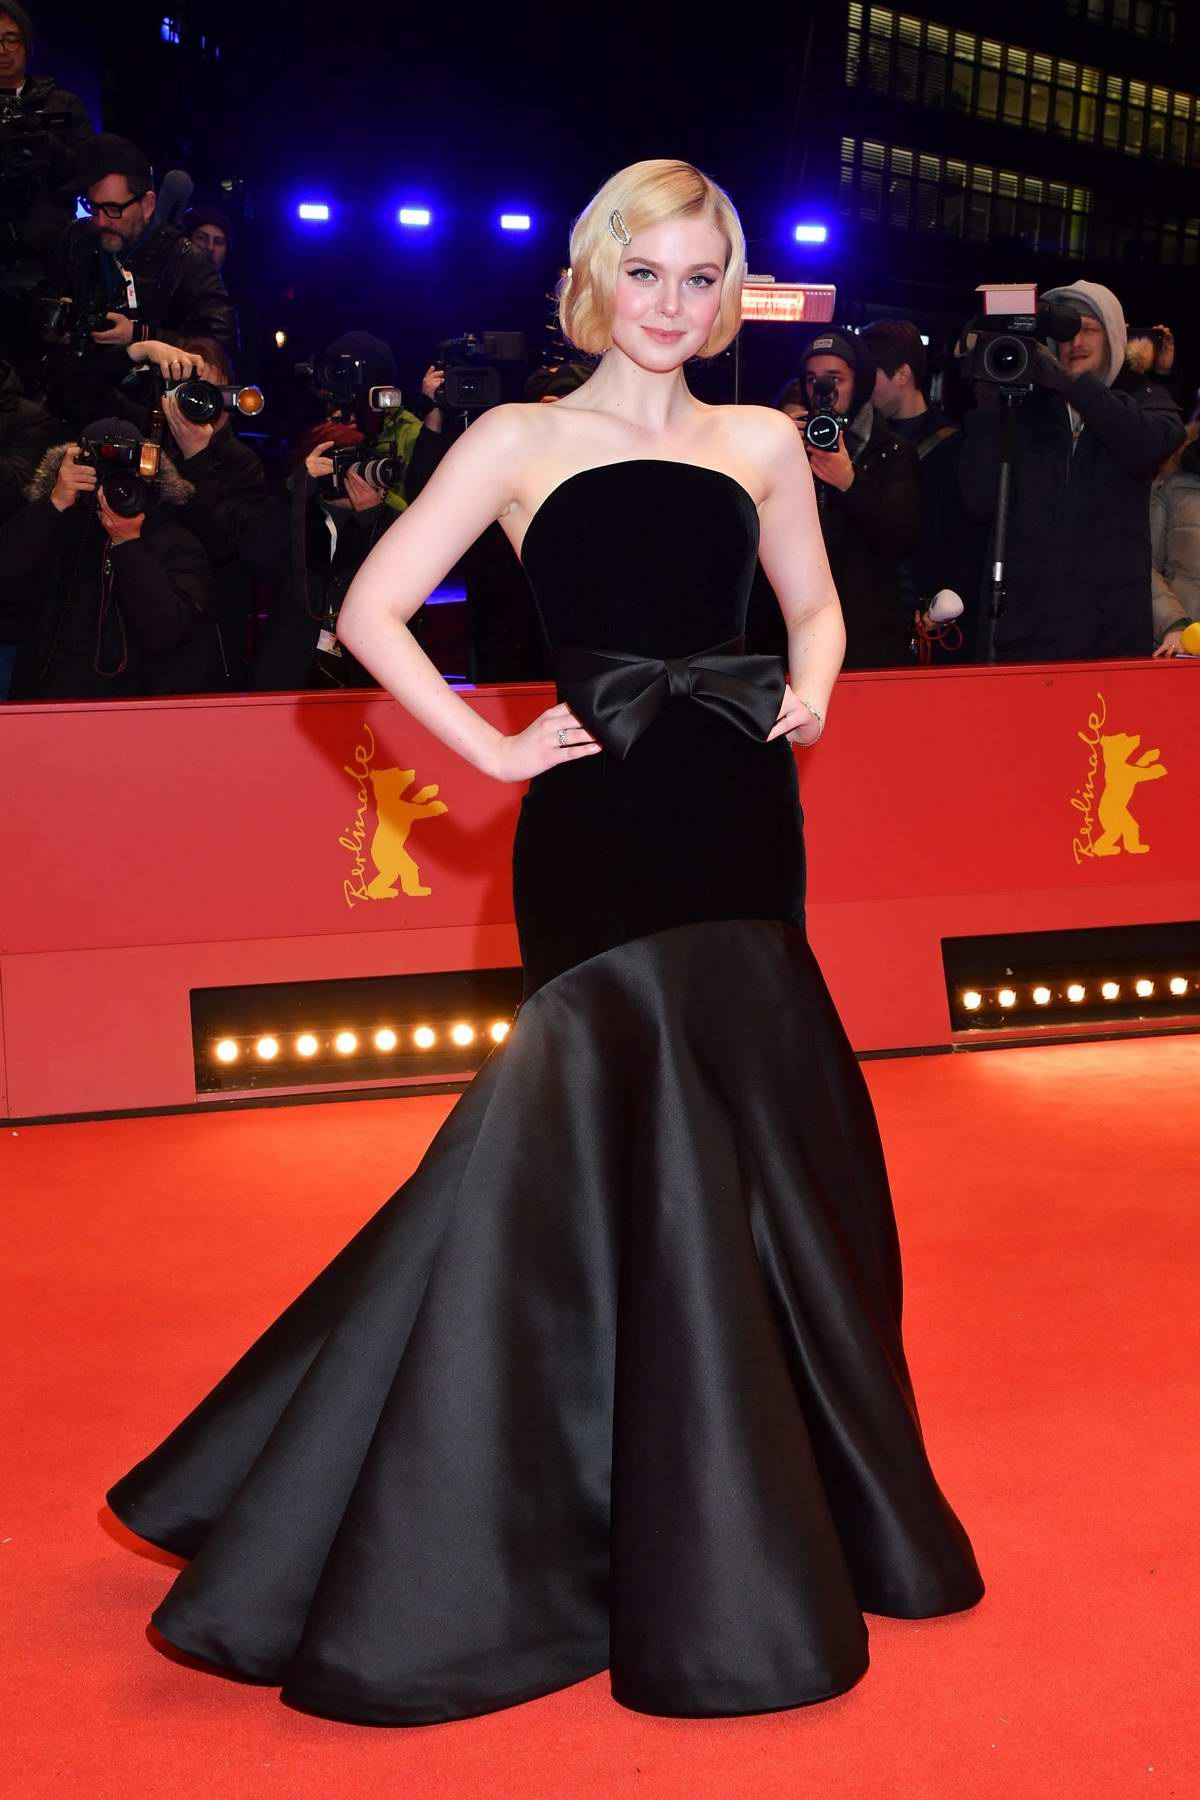 Elle Fanning attends the Premiere of 'The Roads Not Taken' during 70th Berlinale Film Festival in Berlin, Germany